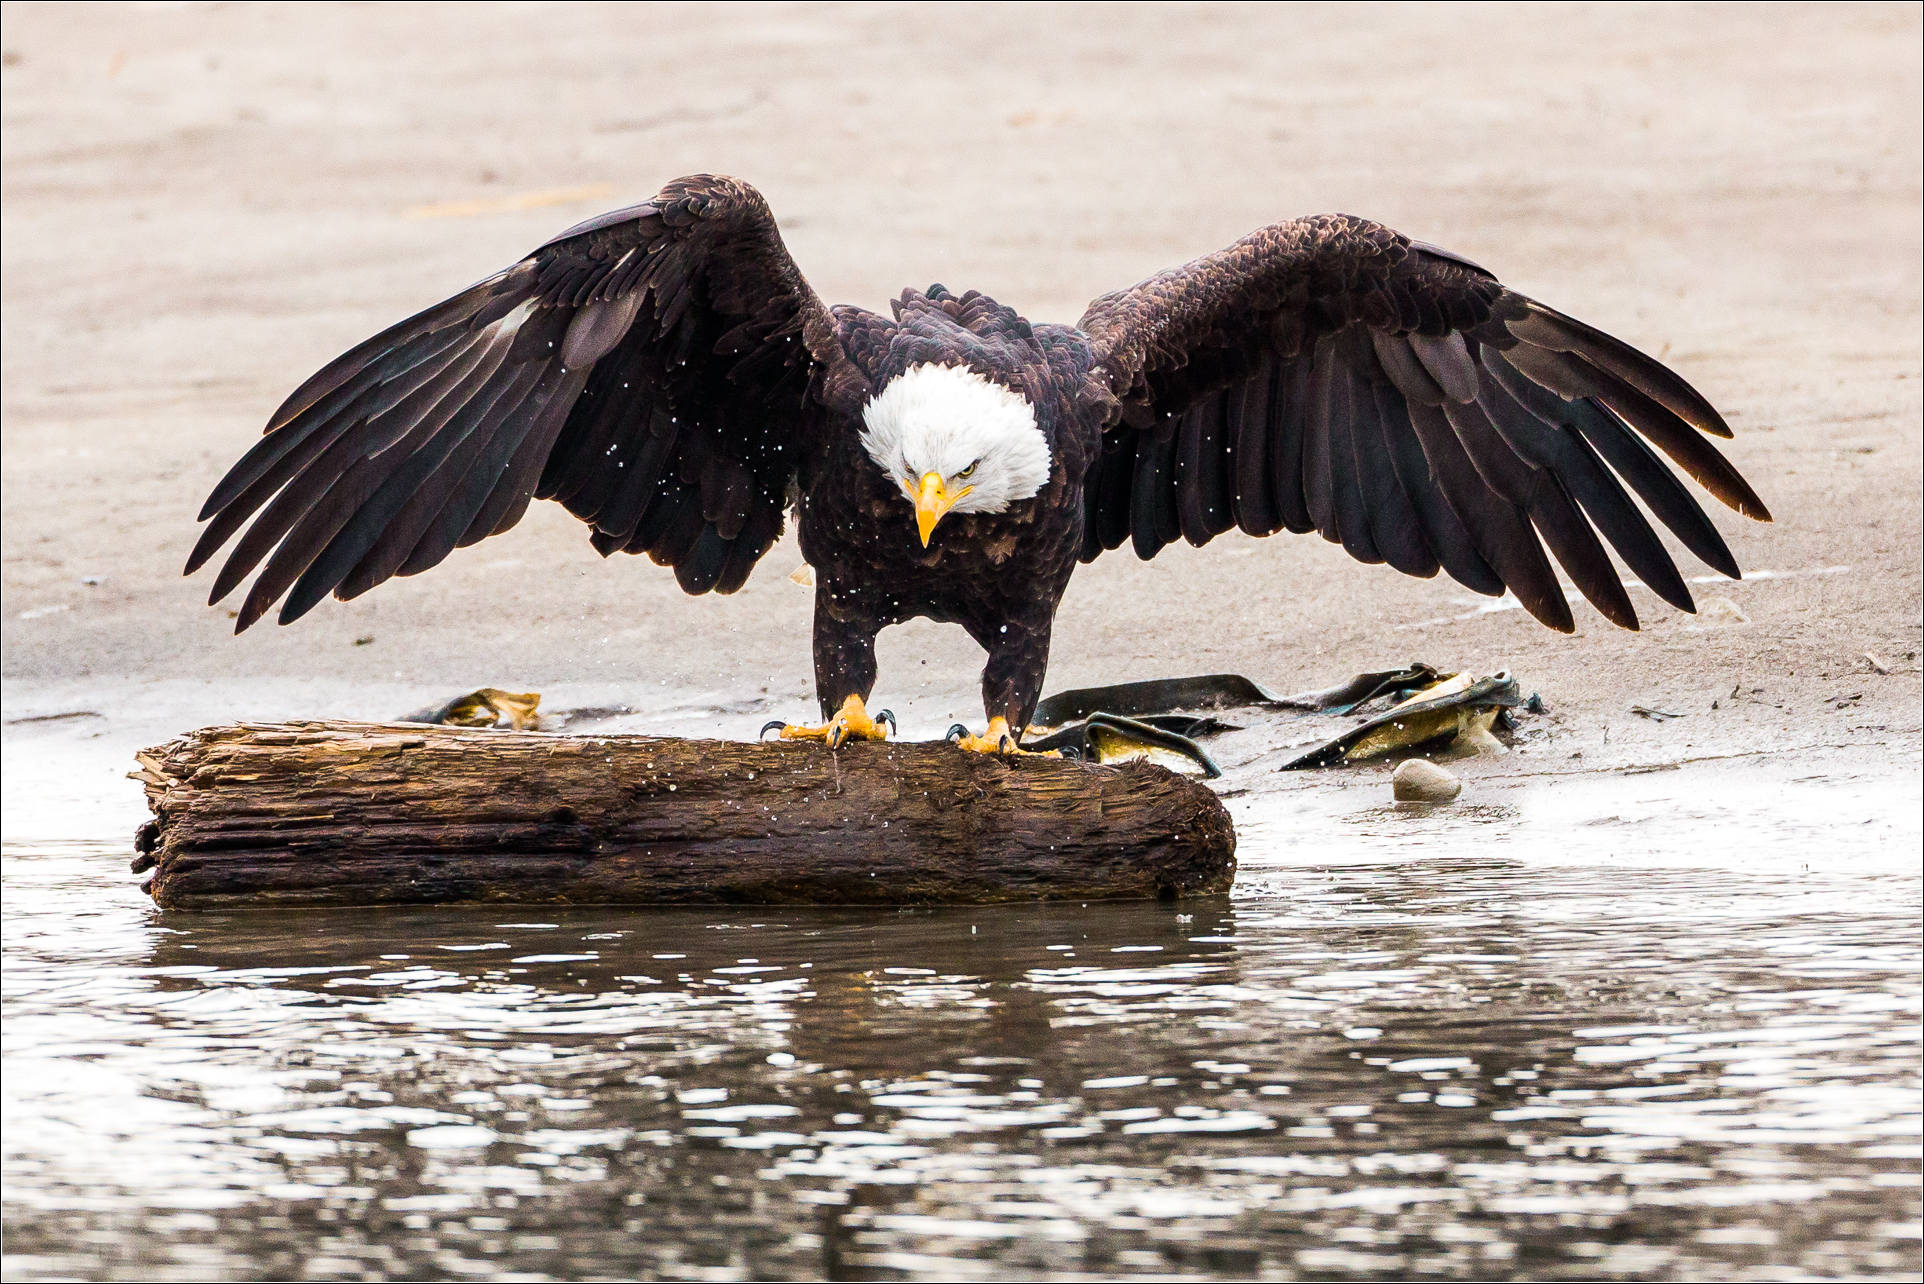 Eagle Catching Fish Drawing Canon 5DIII   500mm f4 lens